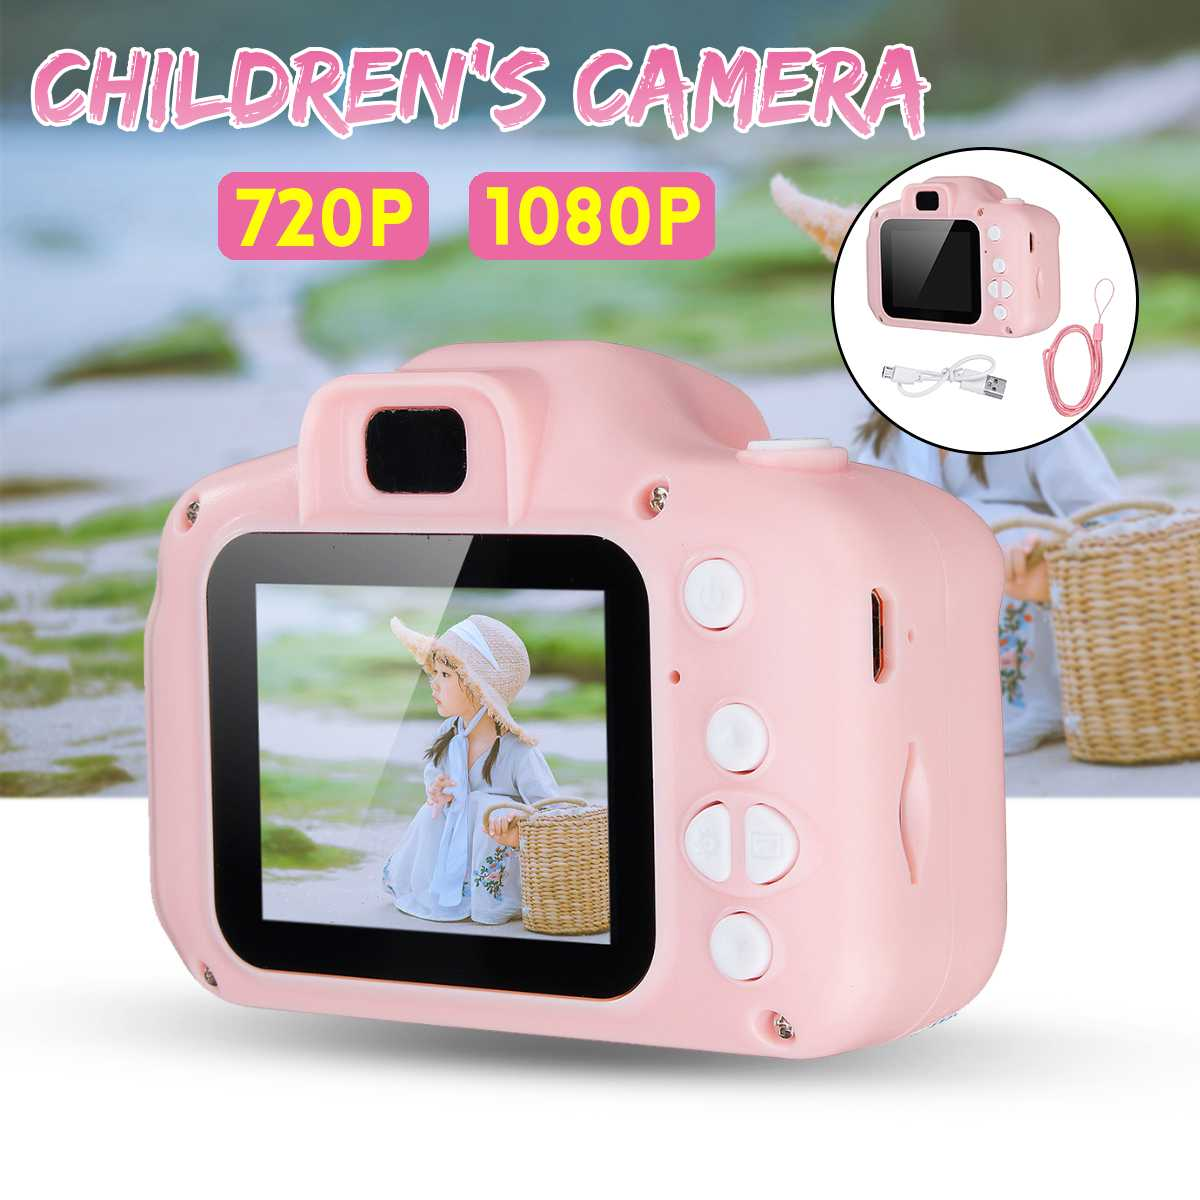 720P/1080P Children Mini Camera Kids Educational Toys For Children Birthday Gift Digital Camera 1080P Projection Video Camera